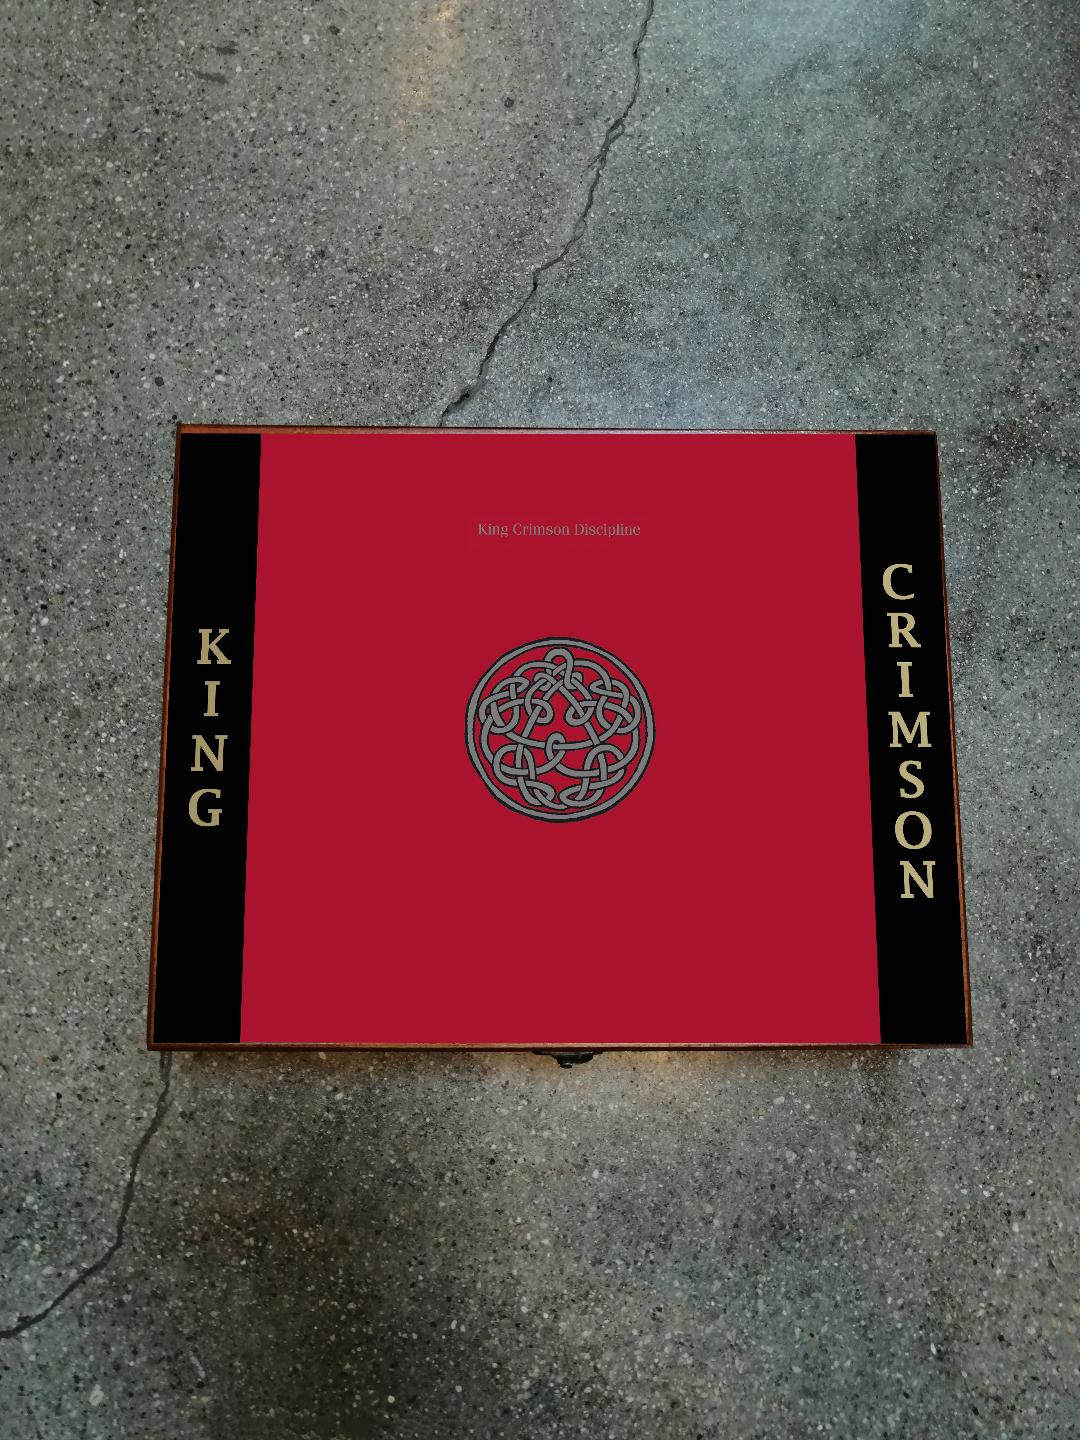 King Crimson Treasure Box SWATCH